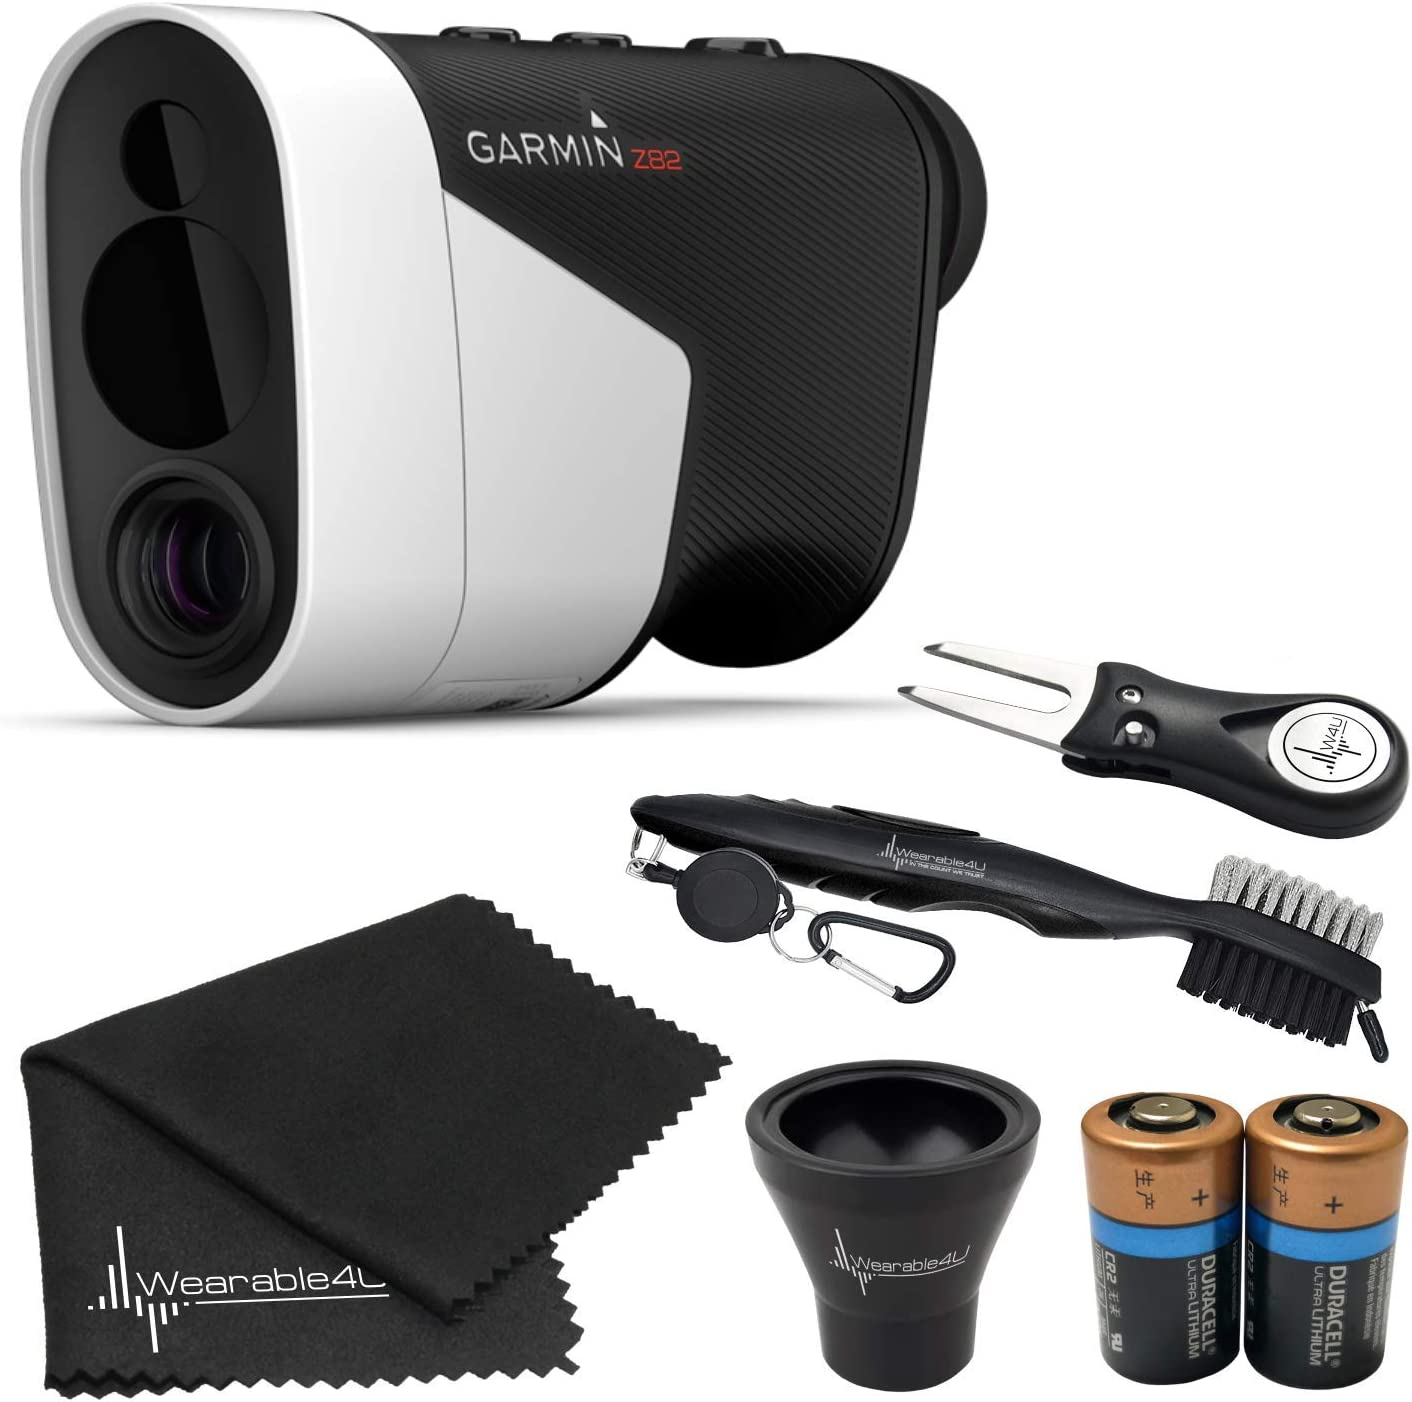 Wearable4U Garmin Approach Z82 (2020 Release) Golf GPS Laser Rangefinder with Included Lens Cloth, Carabiner, Two (2) CR2 Batteries Ultimate Golf 3 Tools Bundle